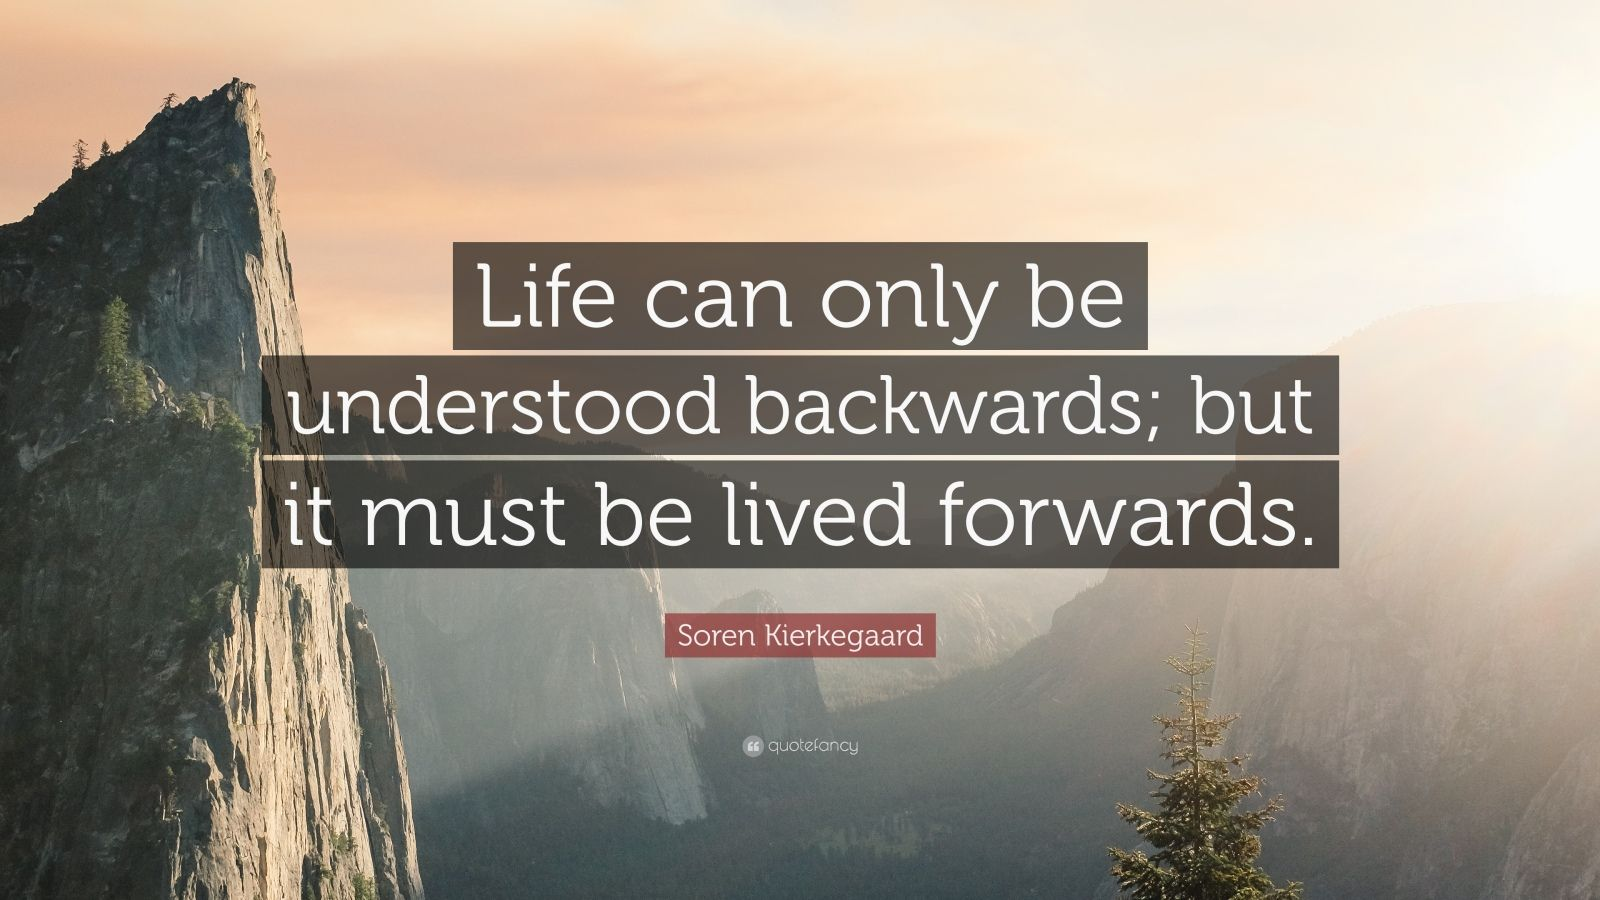 Hd Wallpapers Motivational Quotes Soren Kierkegaard Quote Life Can Only Be Understood